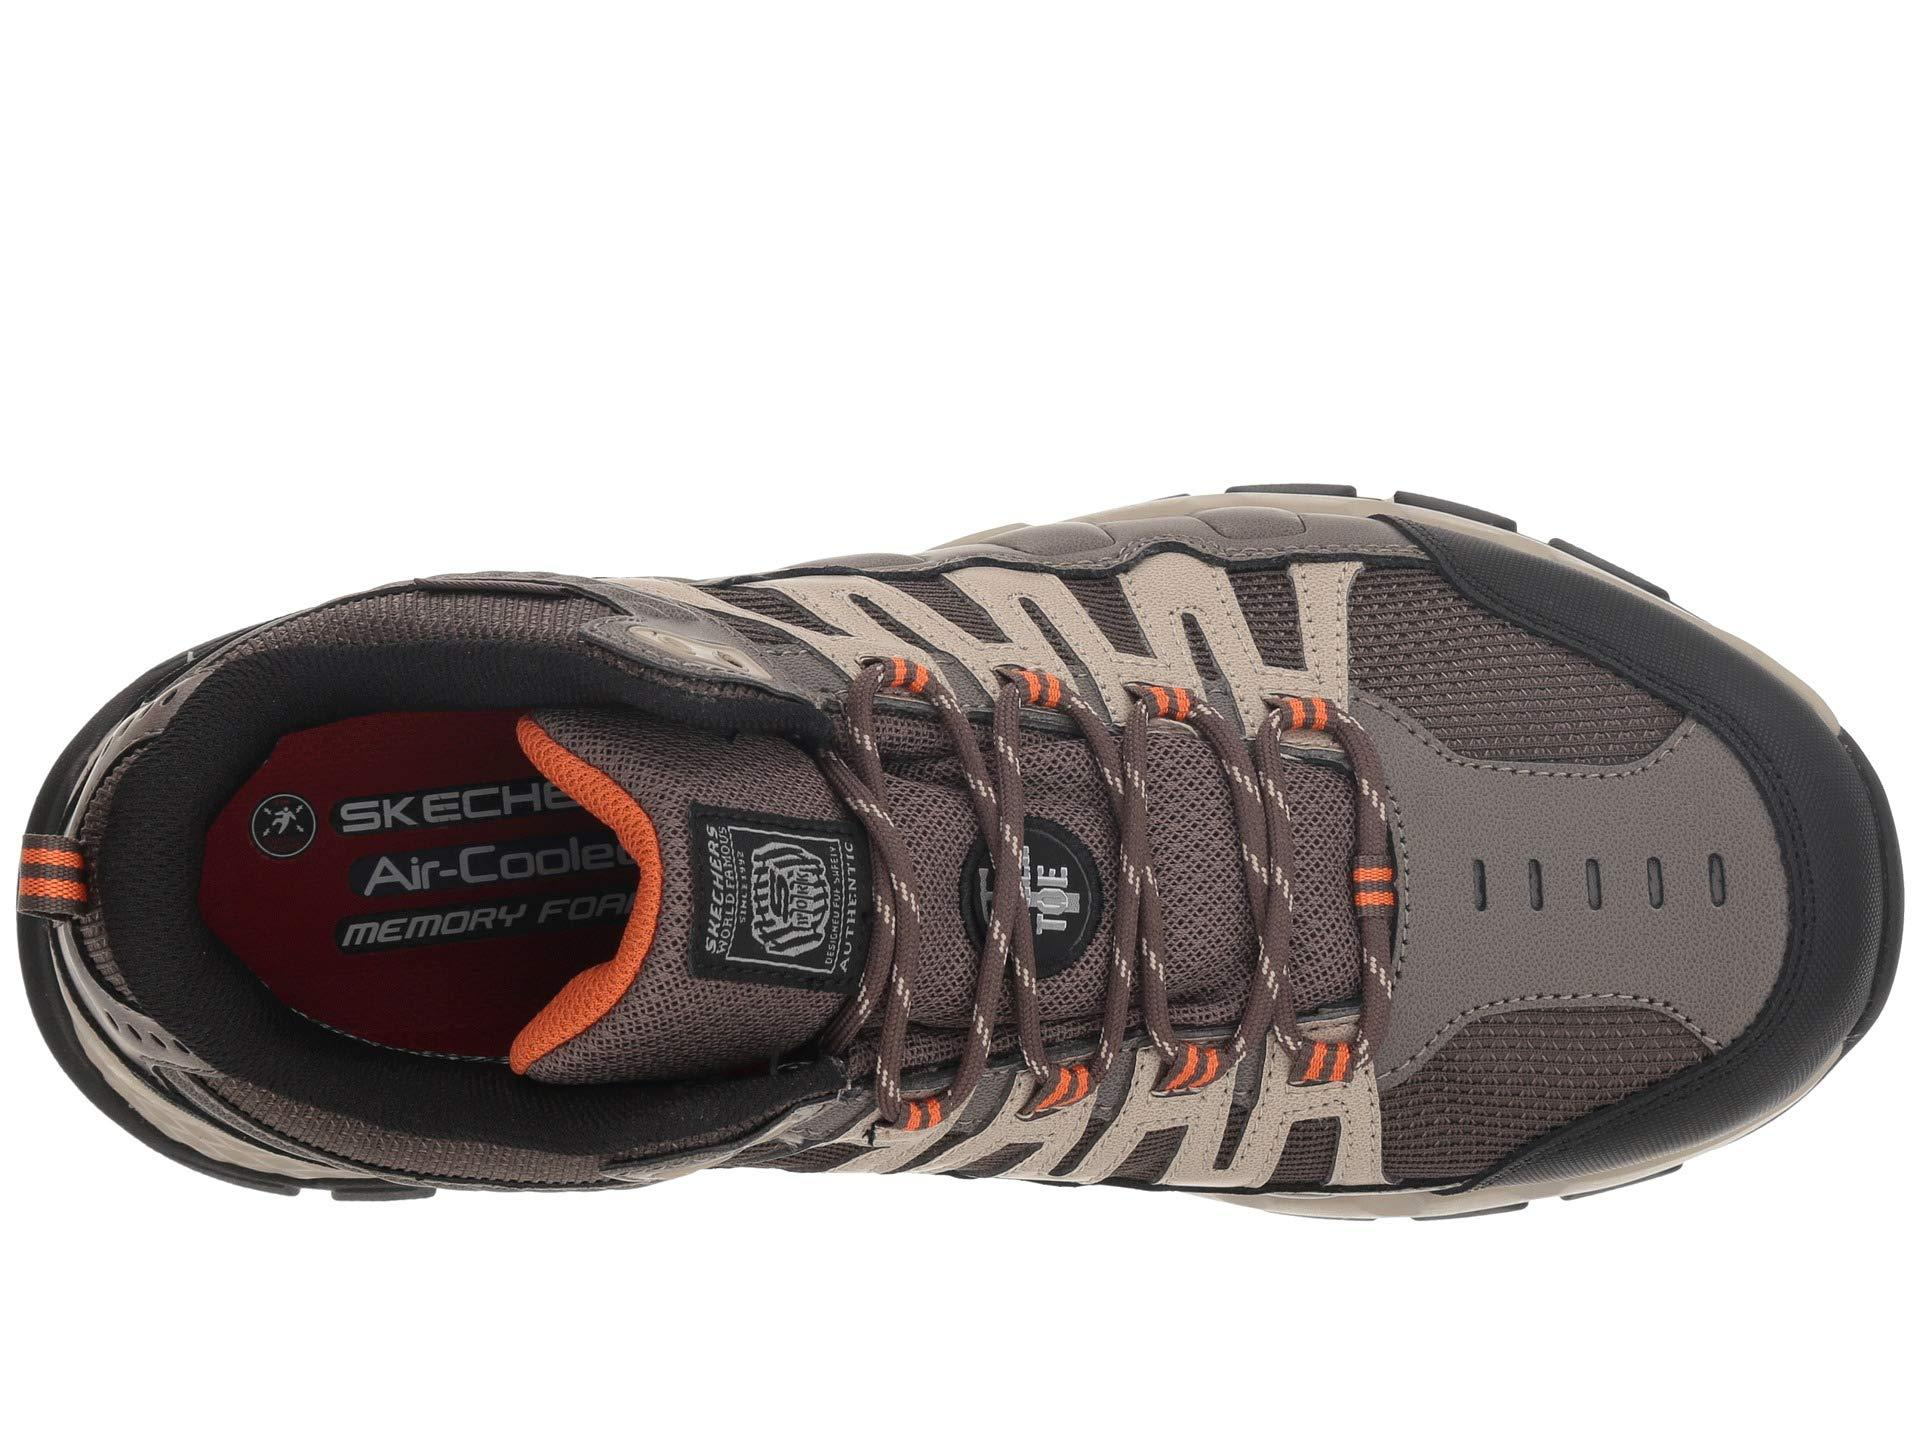 cf63d23c47ce Skechers Work - Multicolor Queznell St Wp for Men - Lyst. View fullscreen